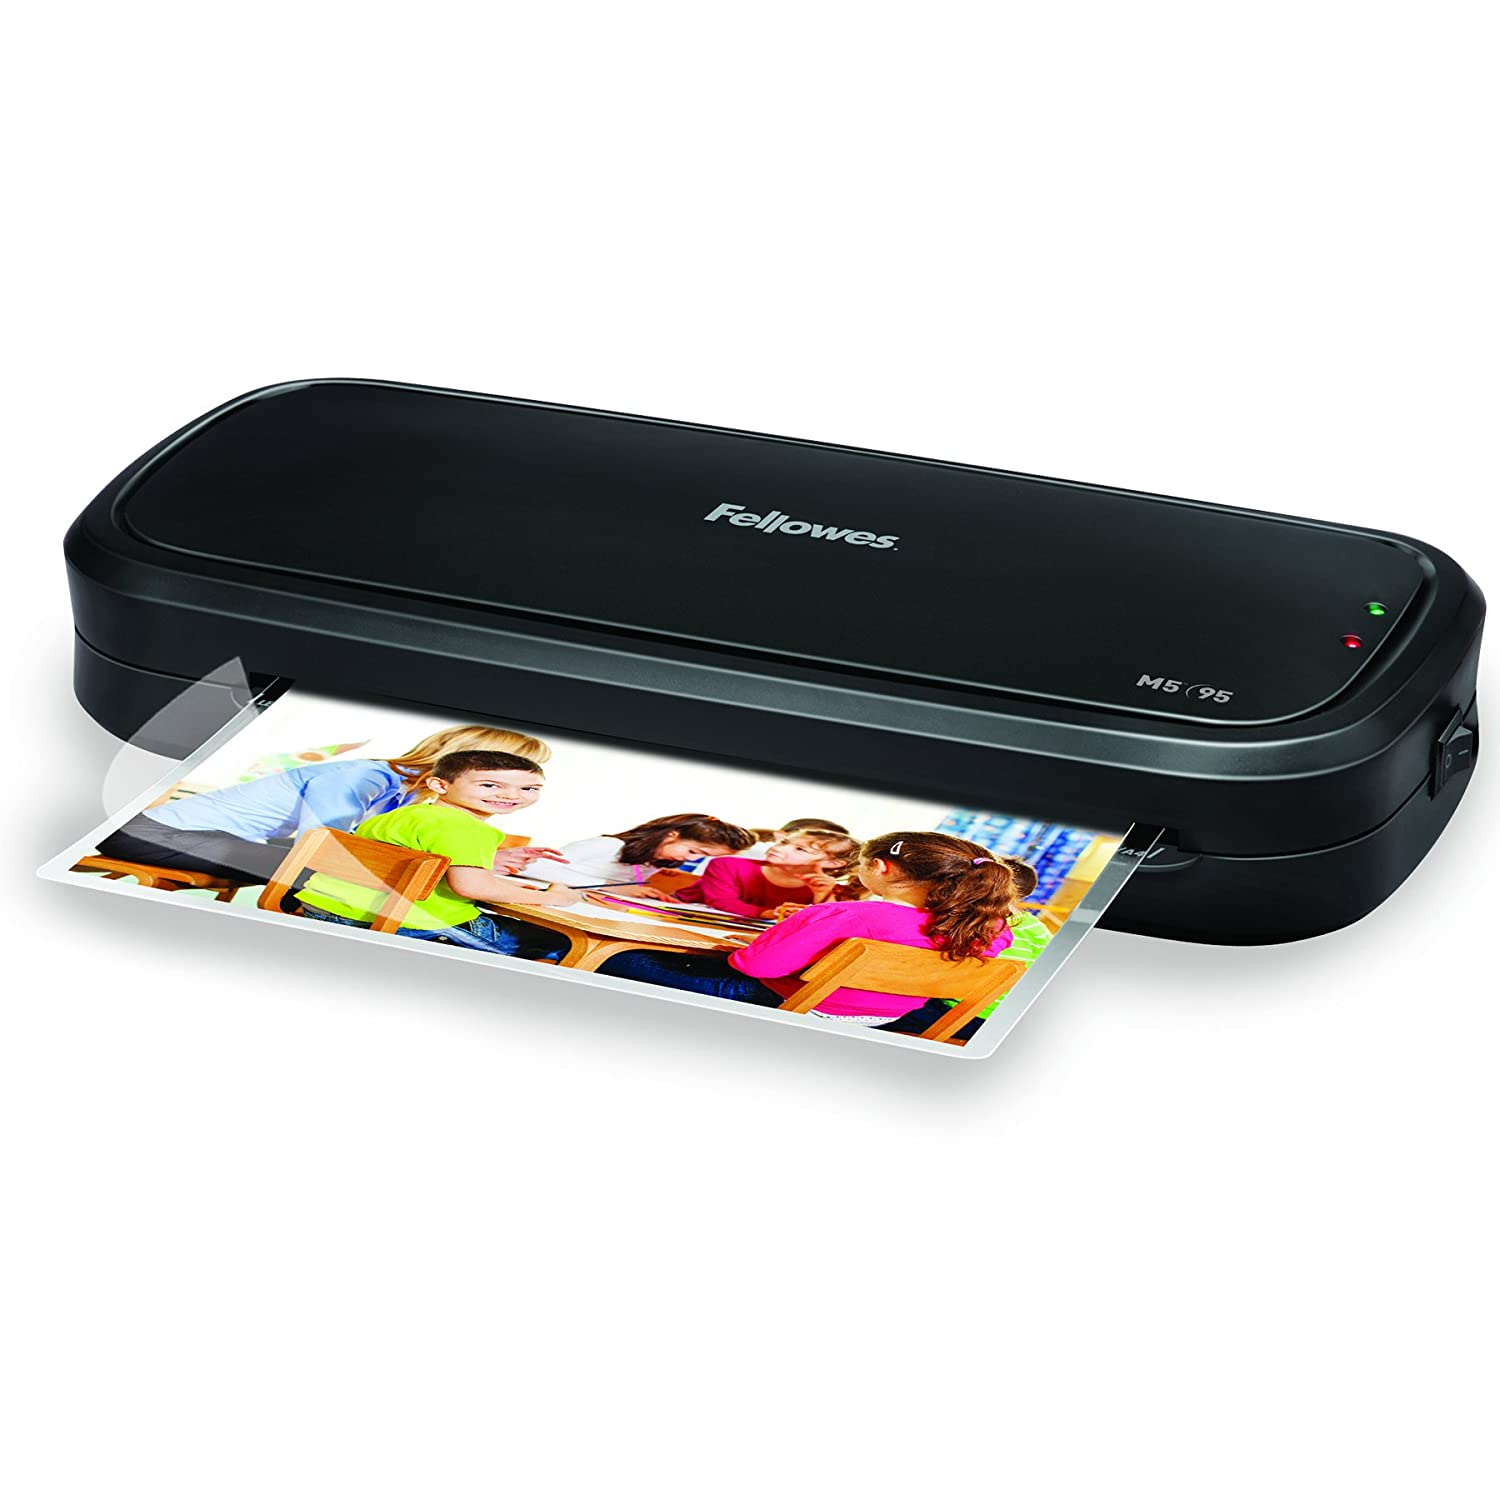 Fellowes 5737601 Laminator with Pouch Starter Kit, Black Fellowes Canada Ltd M5-95